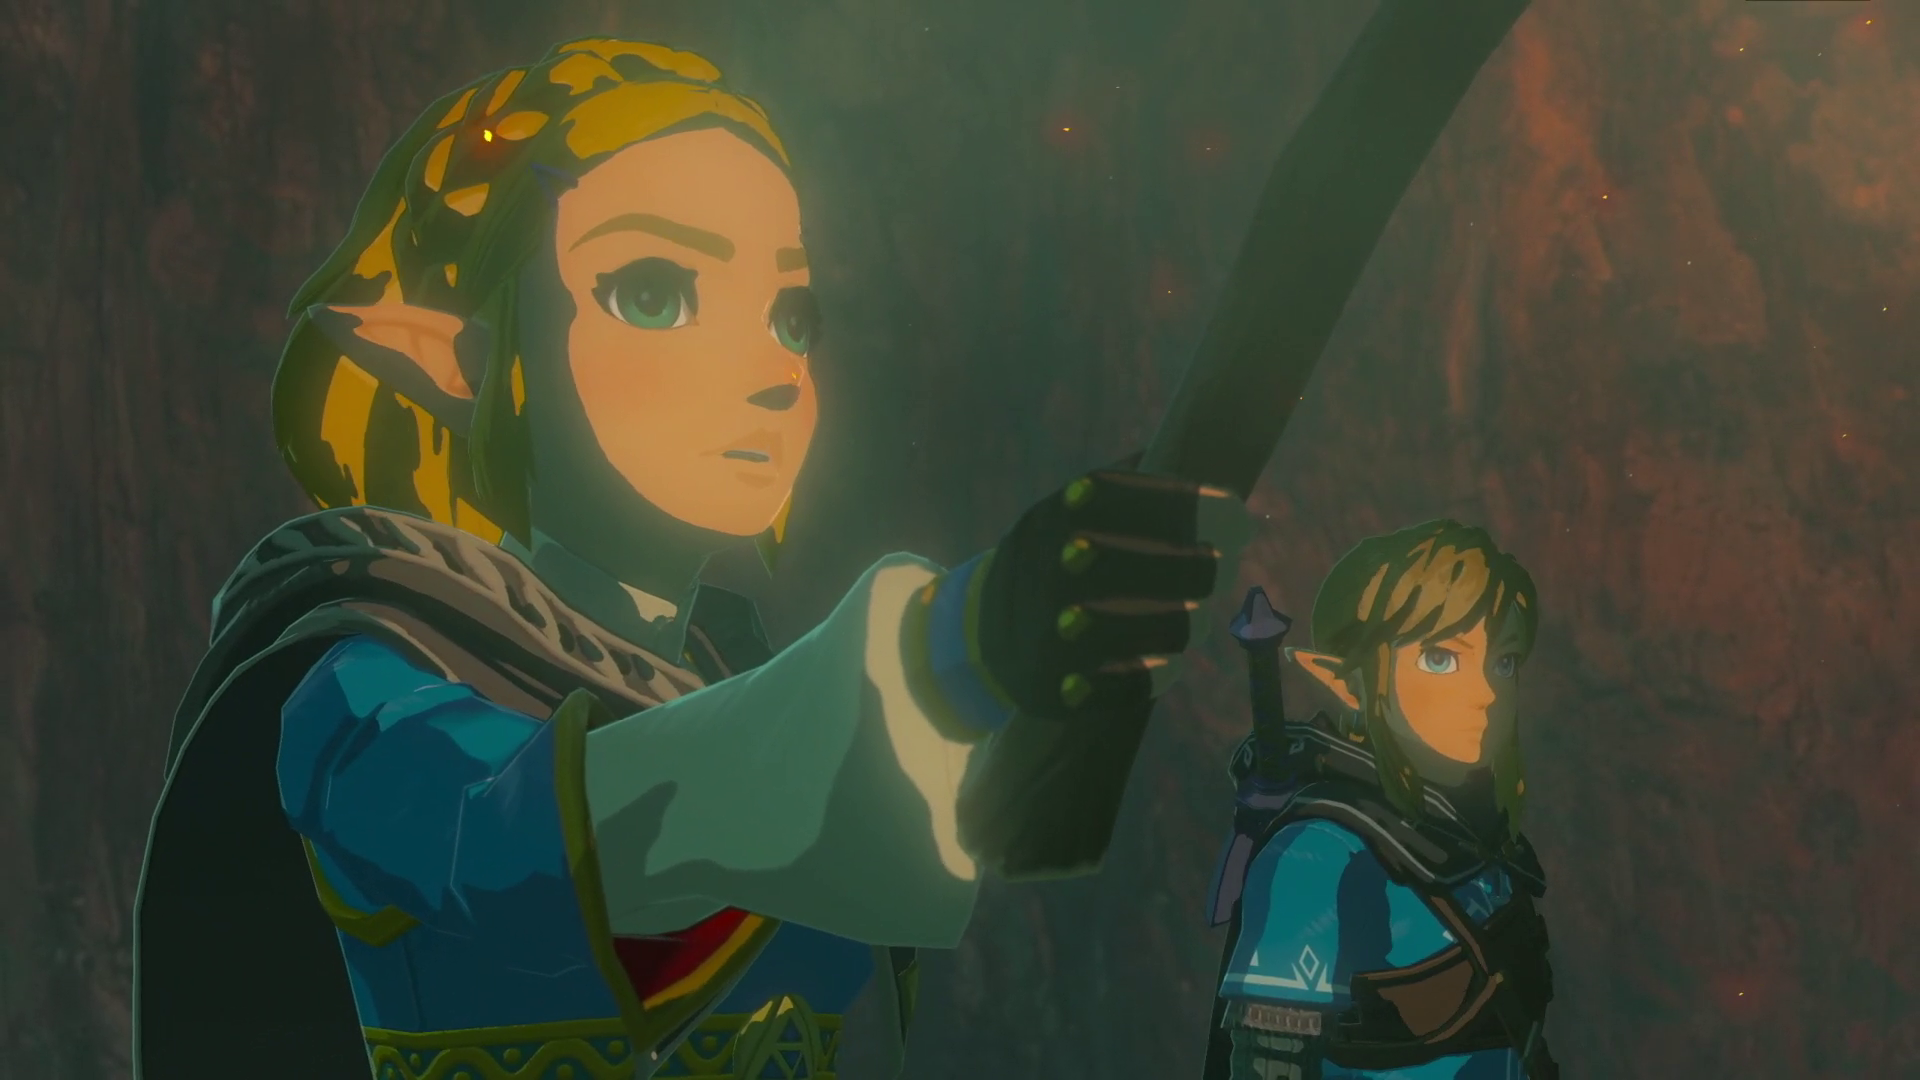 Breath of the Wild 2 isn't the first time Nintendo turned update plans into a sequel